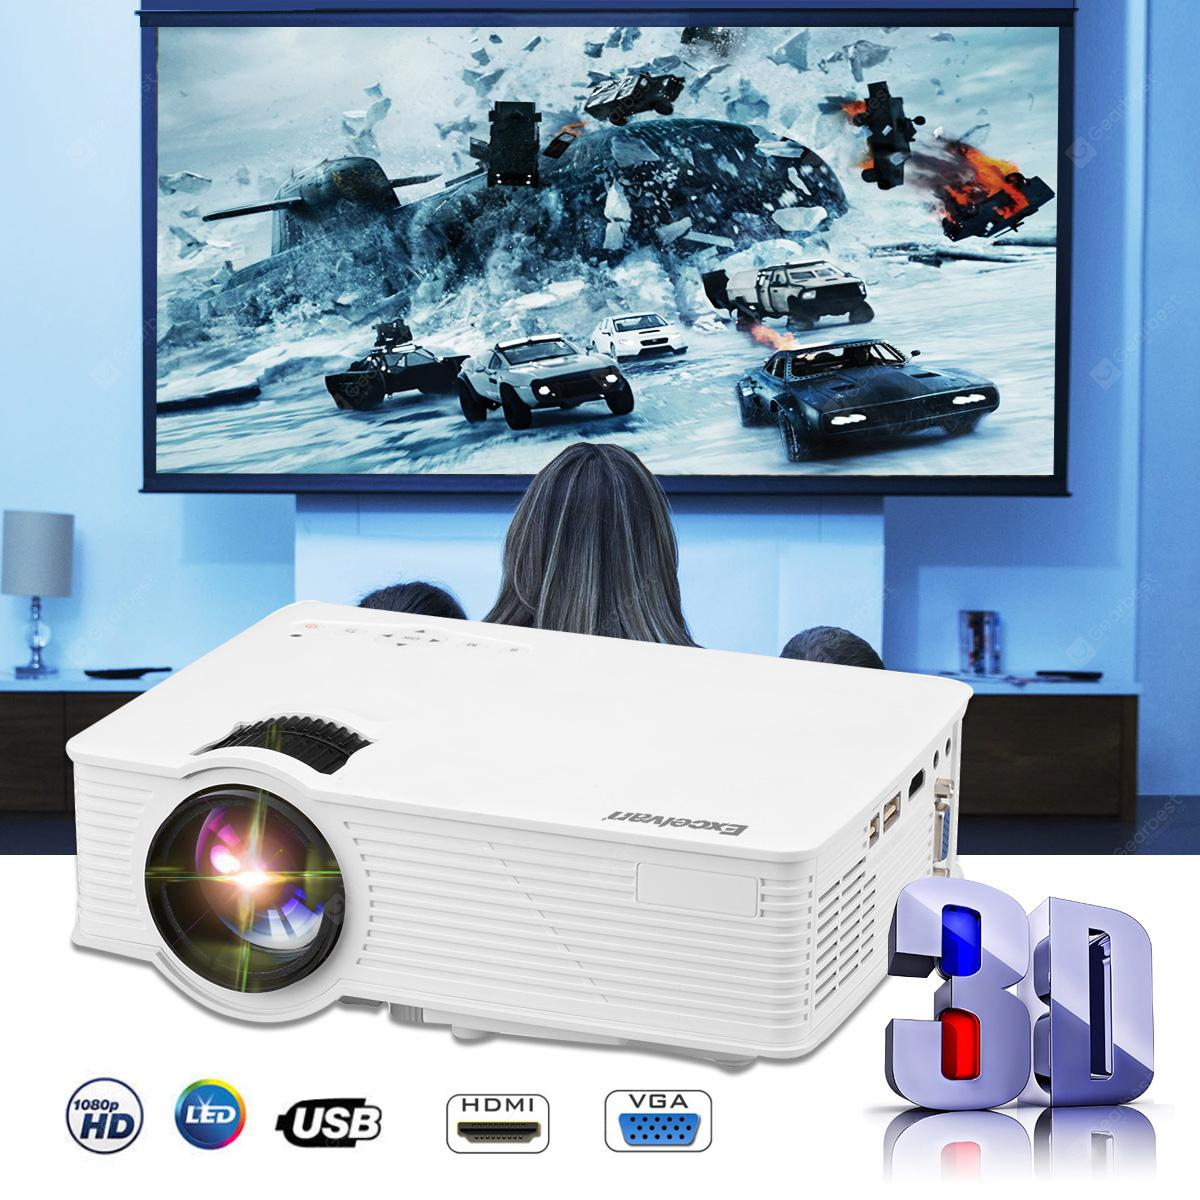 Excelvan mini LED projector 800x480 pixels 1200 lumens Home Cinema theater HDMI/USB/USB(5V)/SD/AV/VGA/3.5mm EHD09?GP9? - WHITE EU PLUG